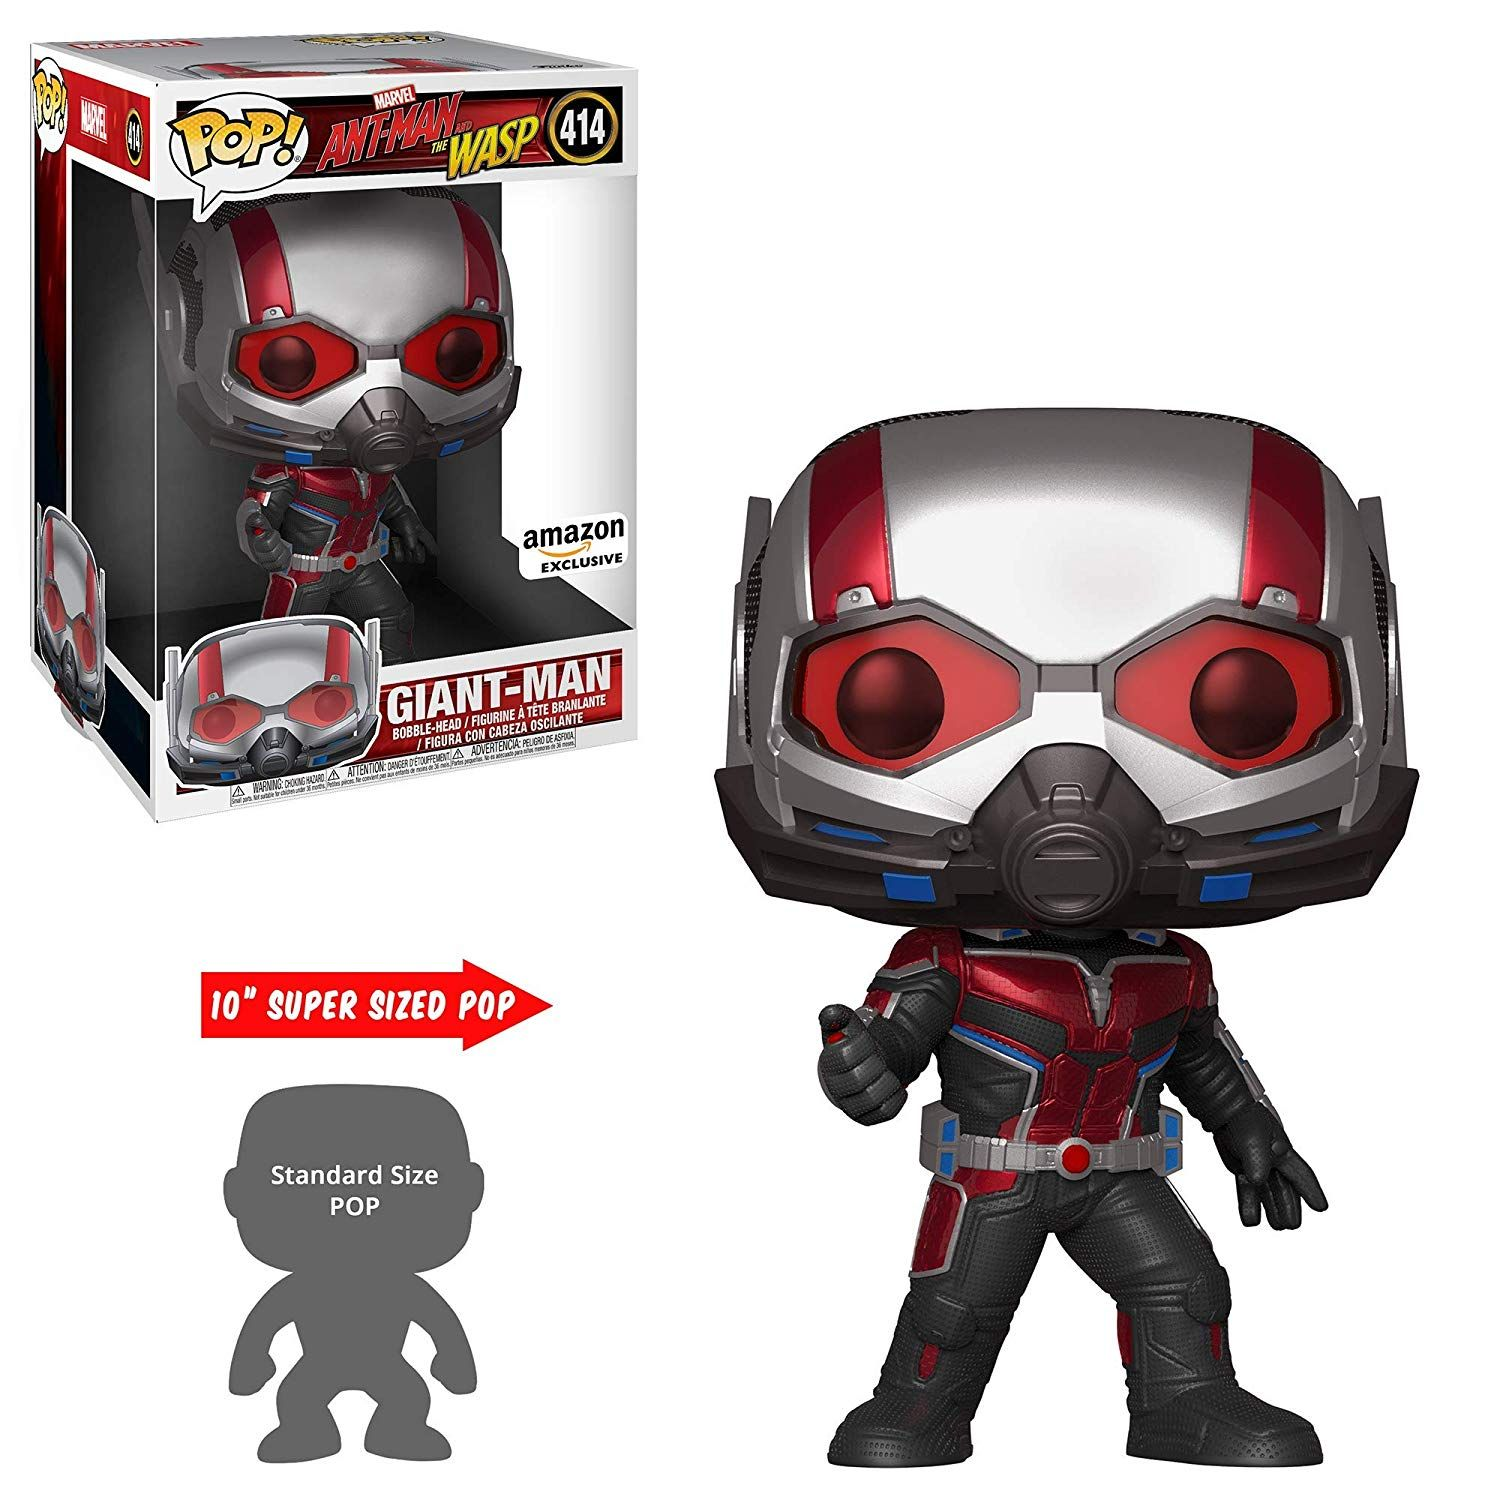 Ant-Man & The Wasp 10 Giant-Man Pop Vinyl Coming Soon